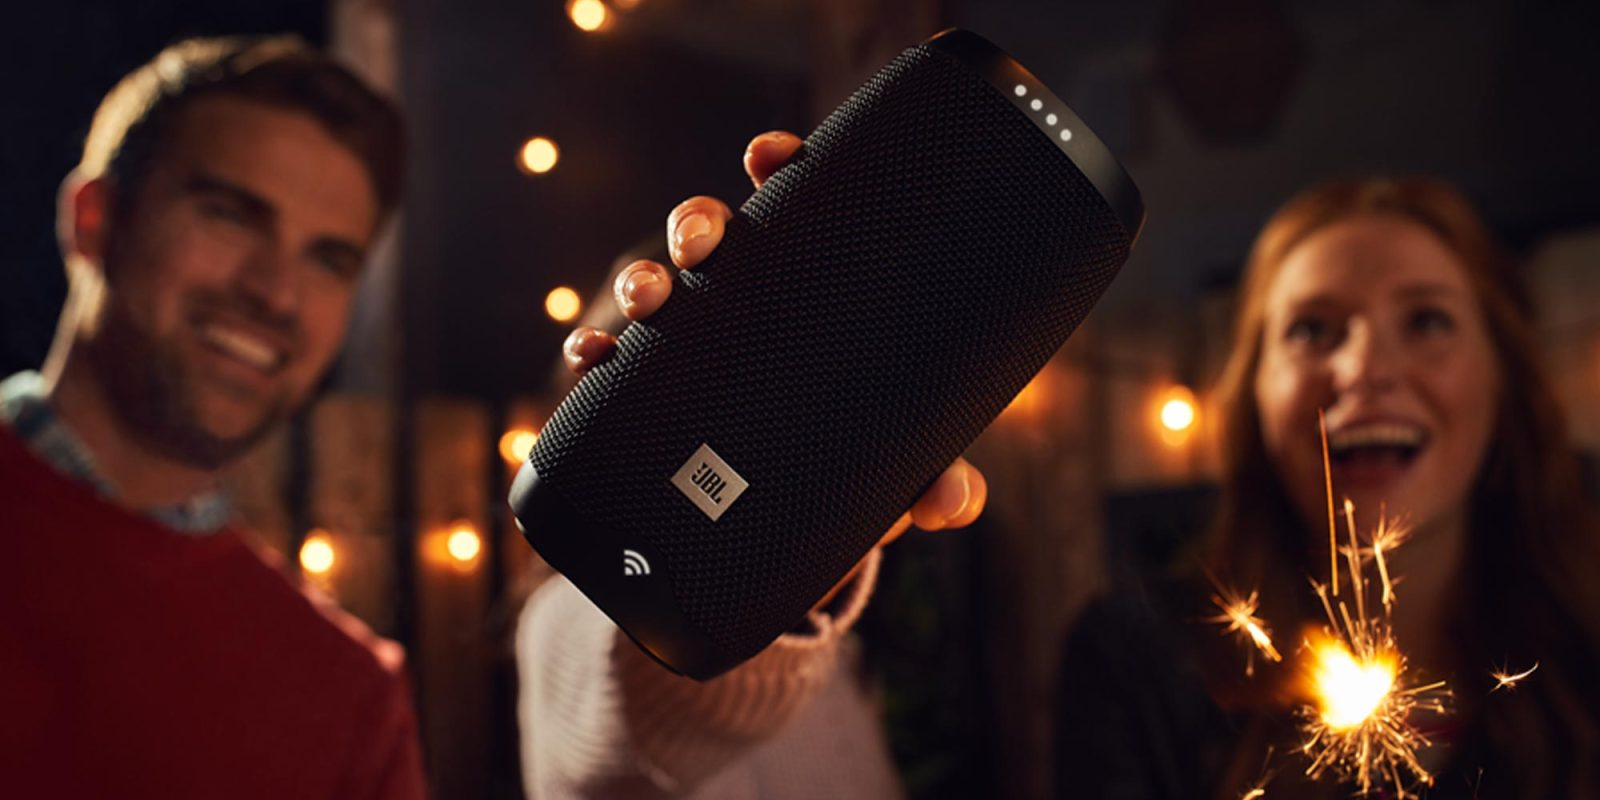 jbl - 9to5Toys